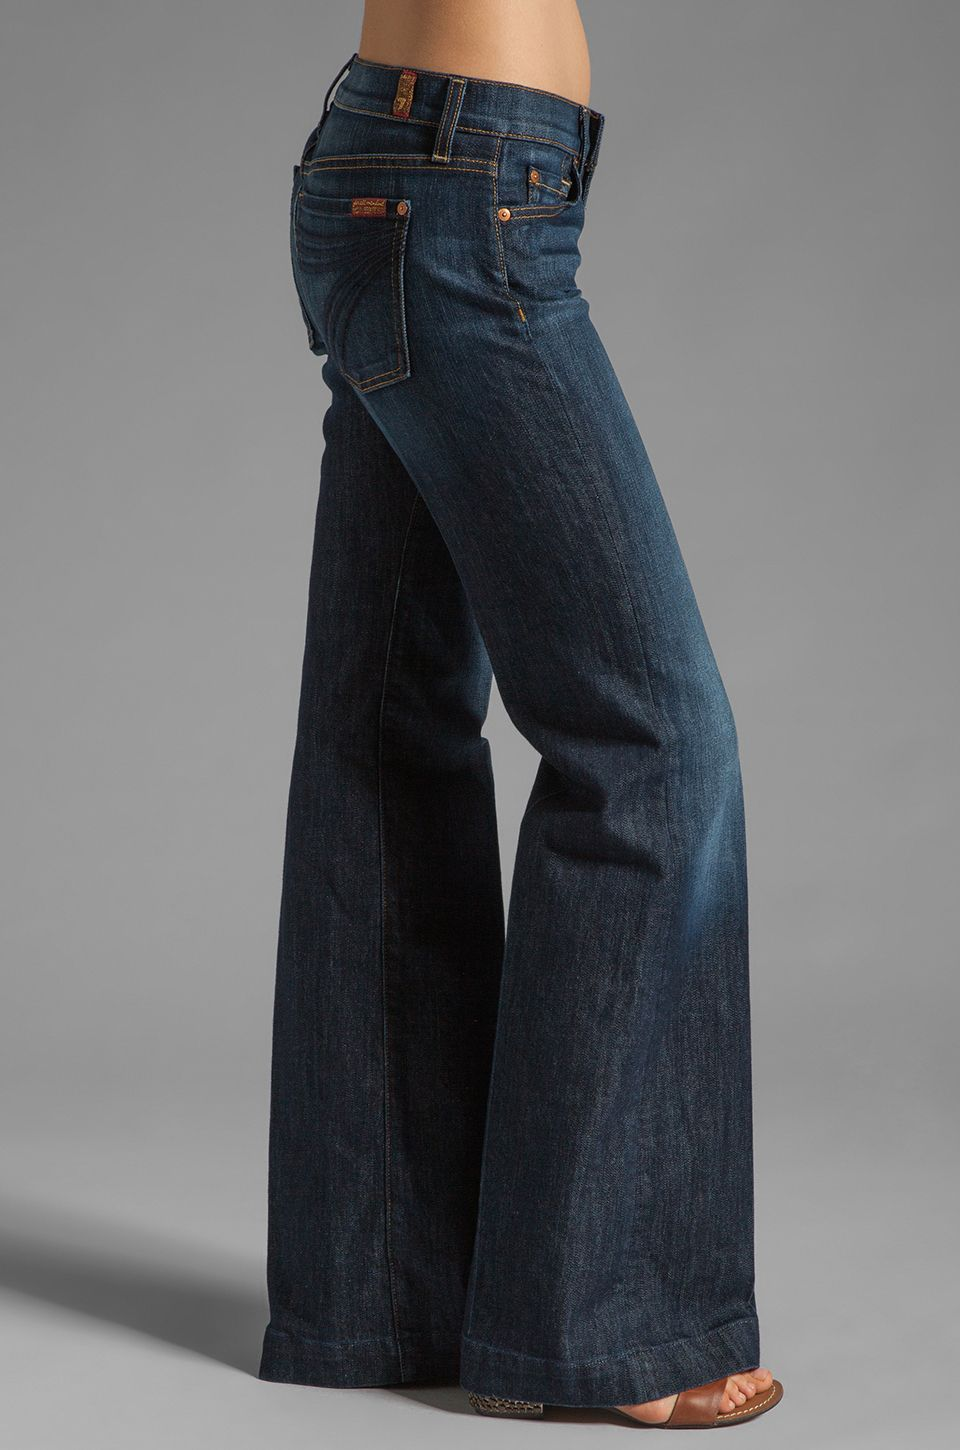 Pin By Ninoska Beauty On Favourite Clothes In 2021 Flair Jeans Jeggings Outfit Clothes